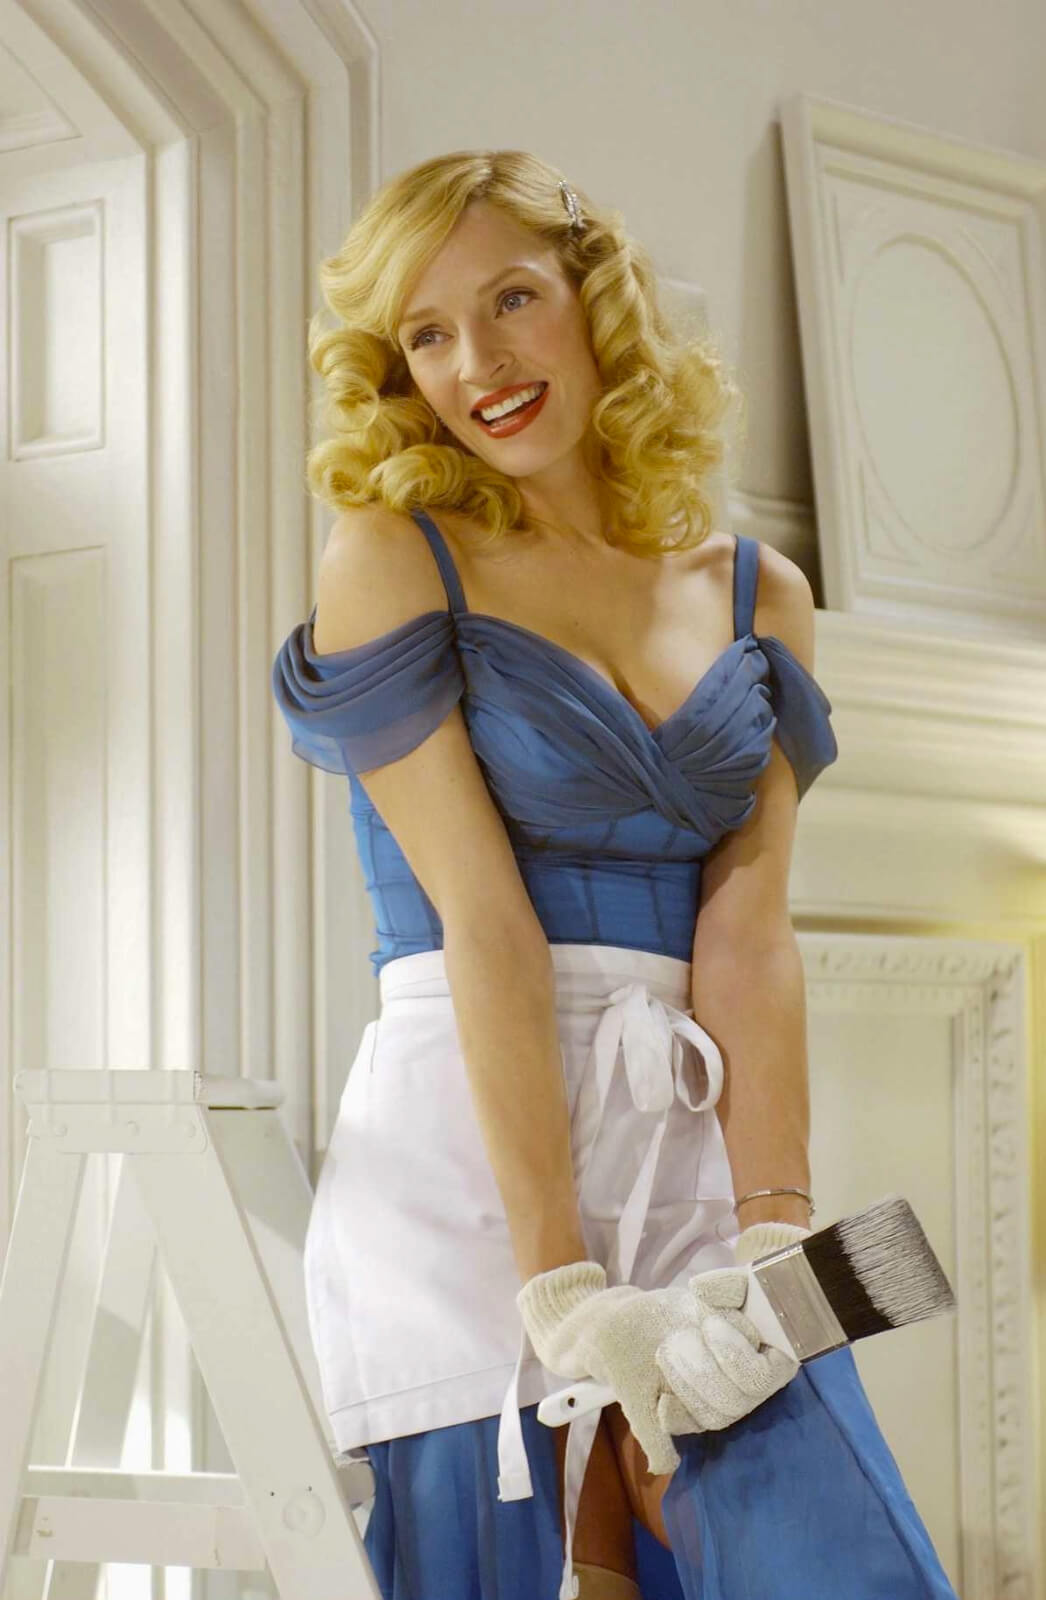 Ulla (Uma Thurman) in a blue dress, white gloves, and apron, holding a paintbrush while standing on a ladder. She has just painted Max's office totally white.